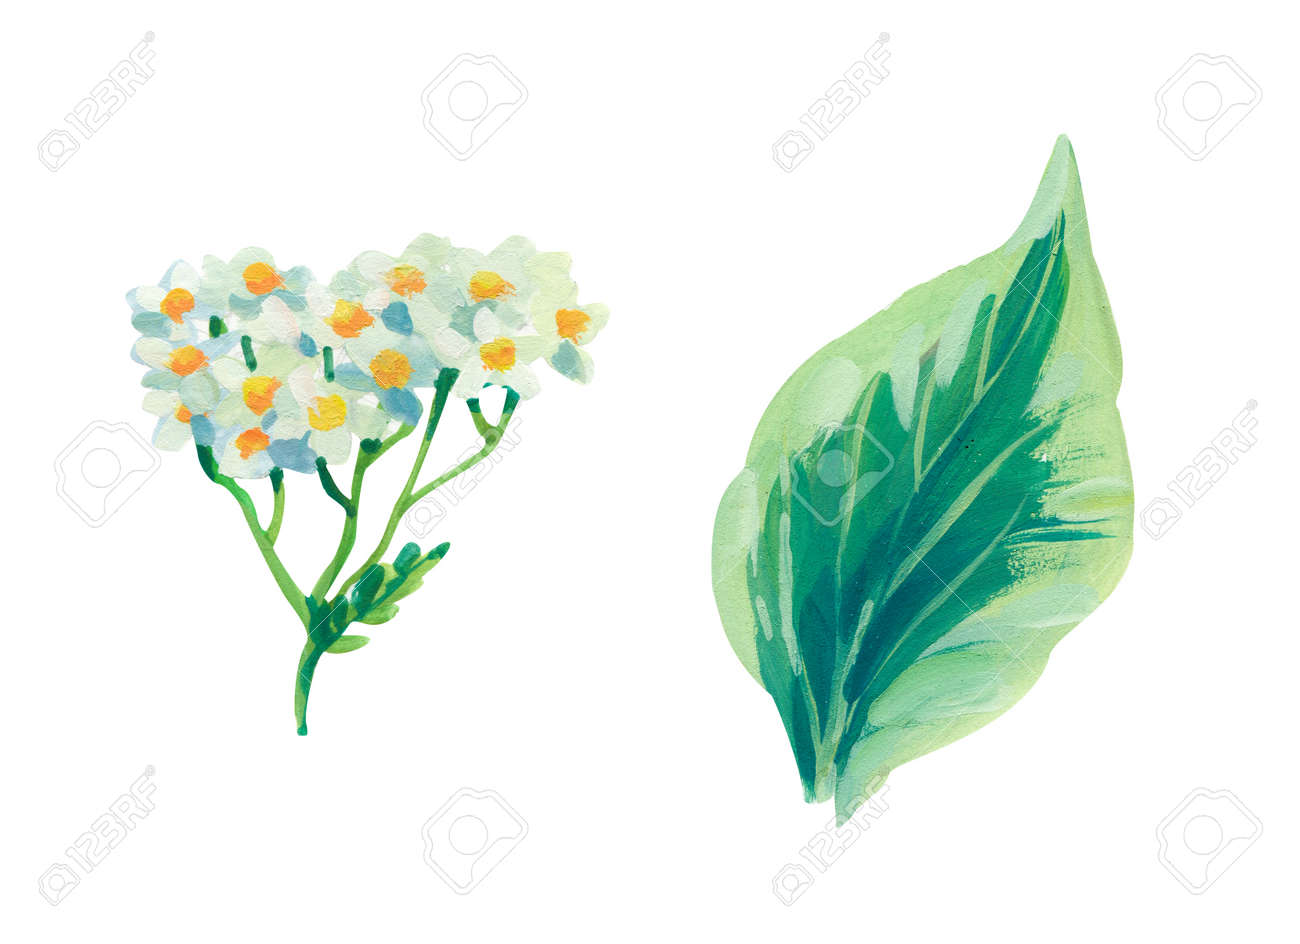 Hand painted acrylic or gouache floral elements set on white background - 163875229